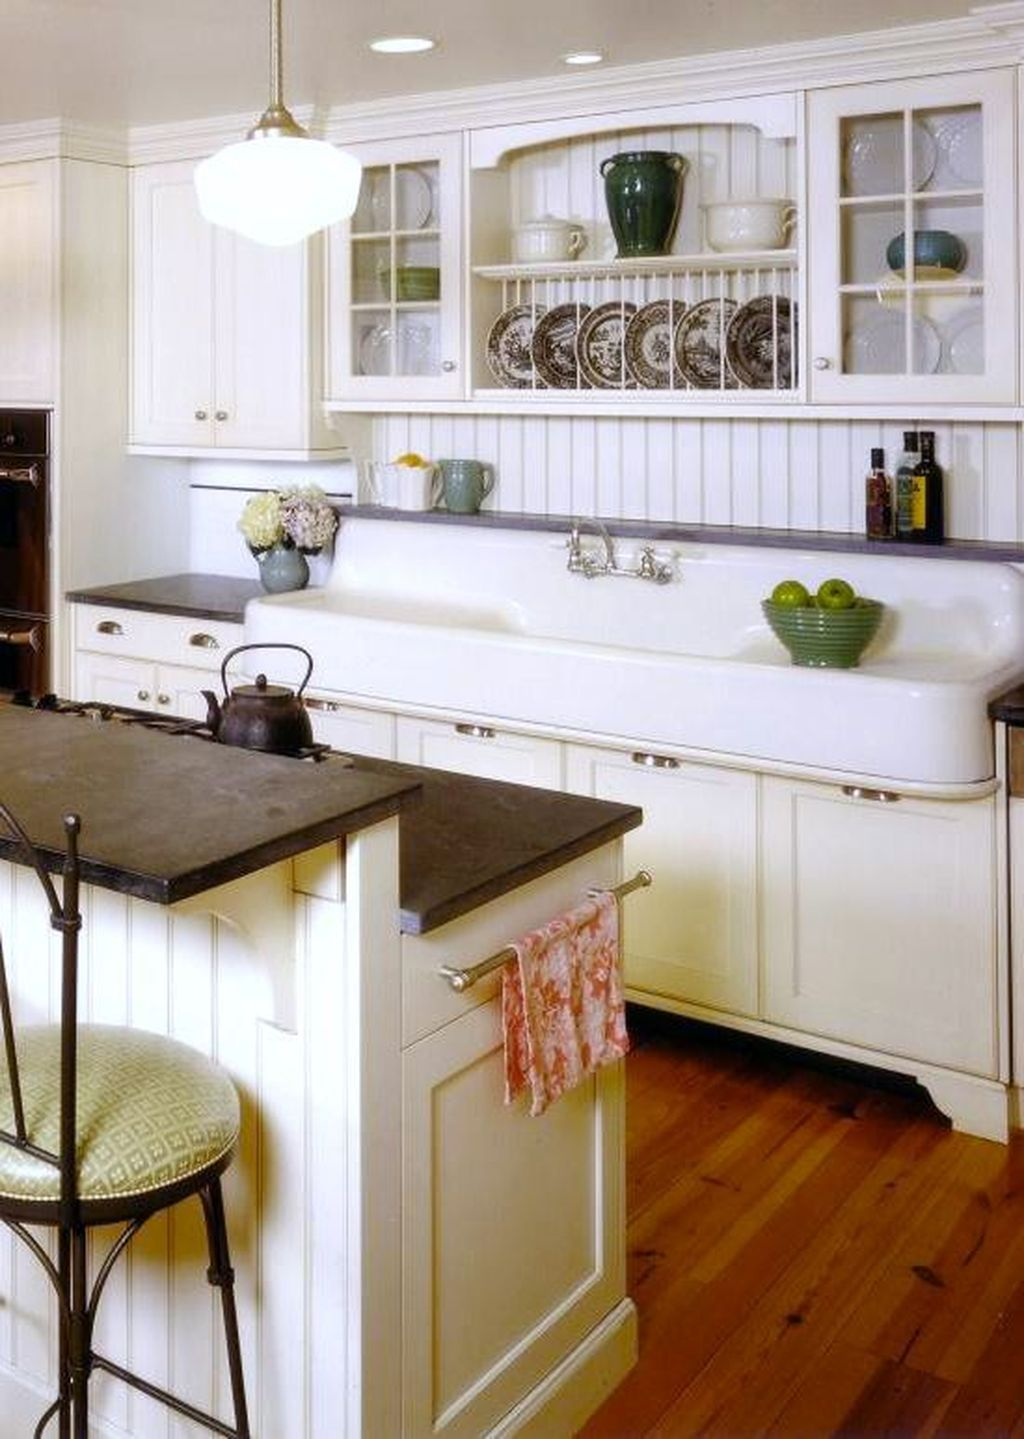 42 Stunning Vintage Kitchen Design Ideas To Spice Up Your Home ...